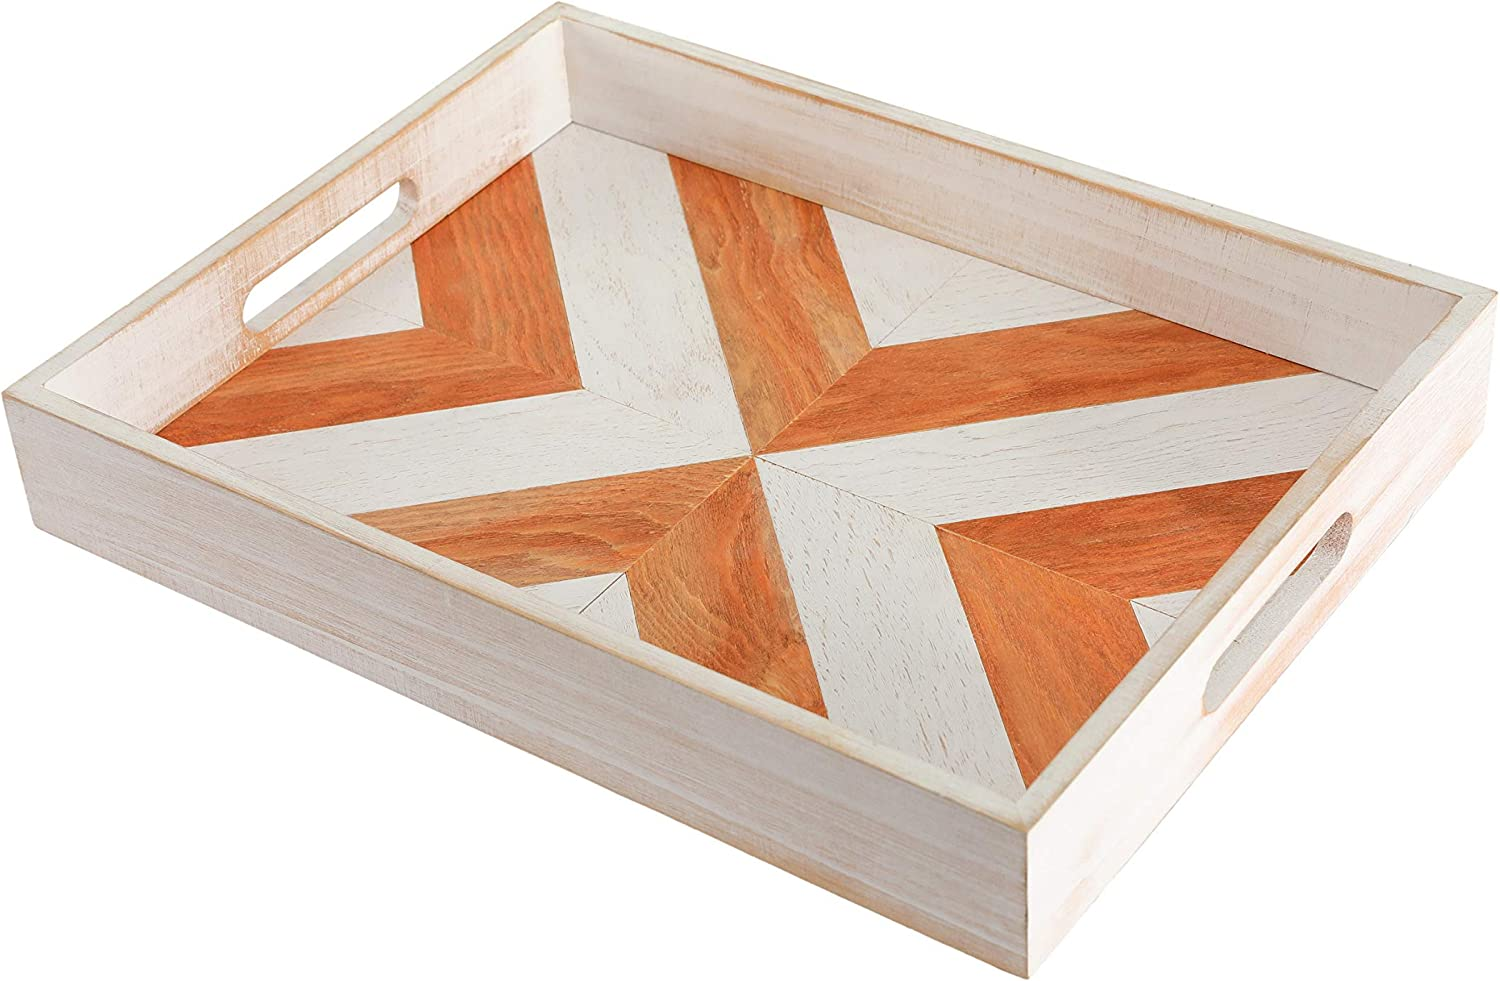 Handmade Wooden Serving Tray with Handles - 16.1x12.2 Inch Serving Tray for Ottoman - Decorative Trays for Coffee Table - Rustic Tray - Food Serving Tray